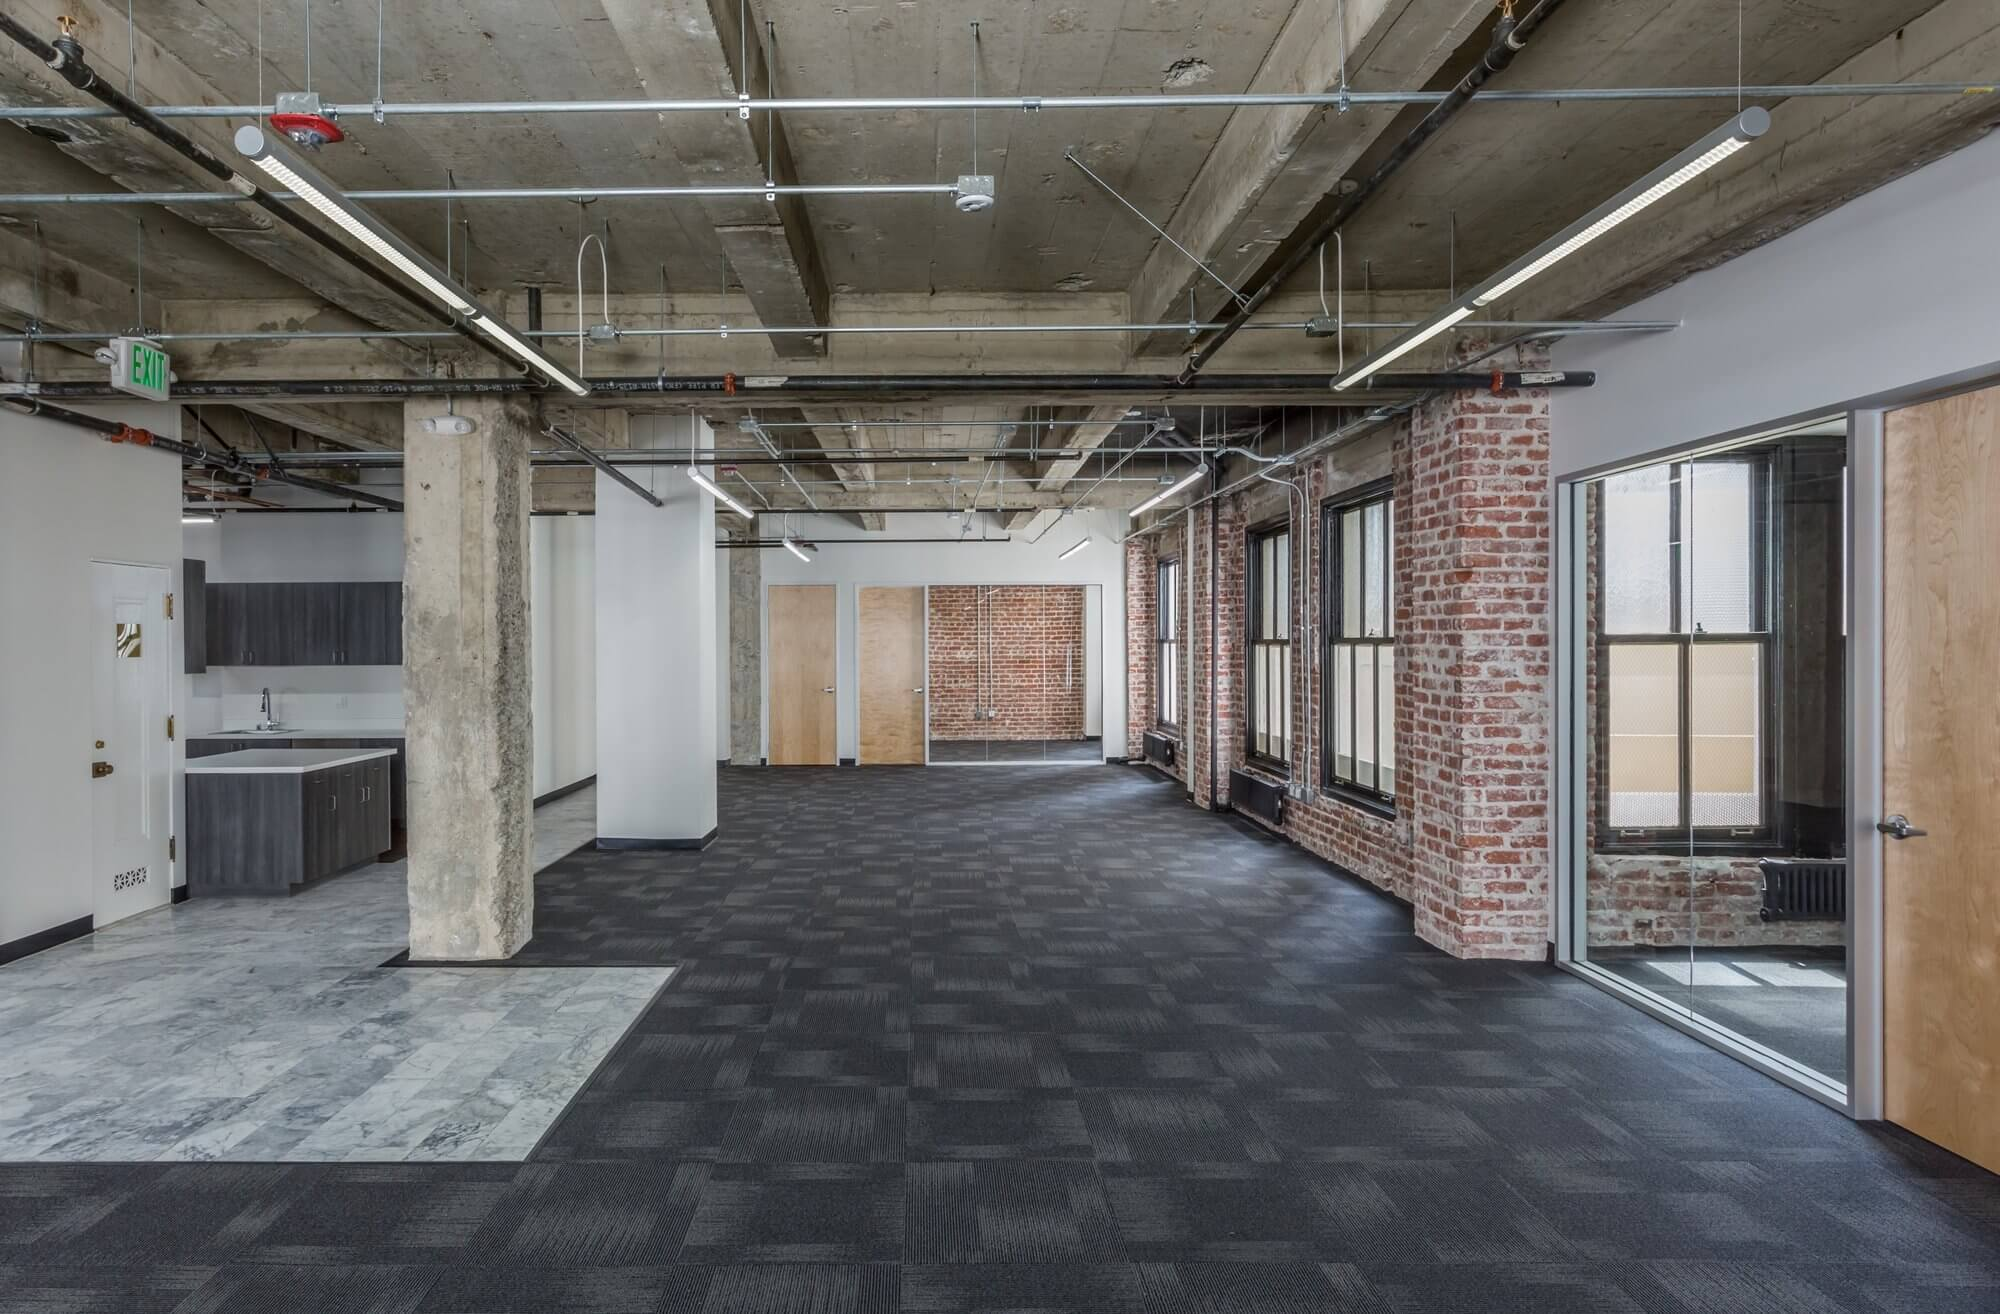 office space with black flooring, pillars, white walls and brown doors